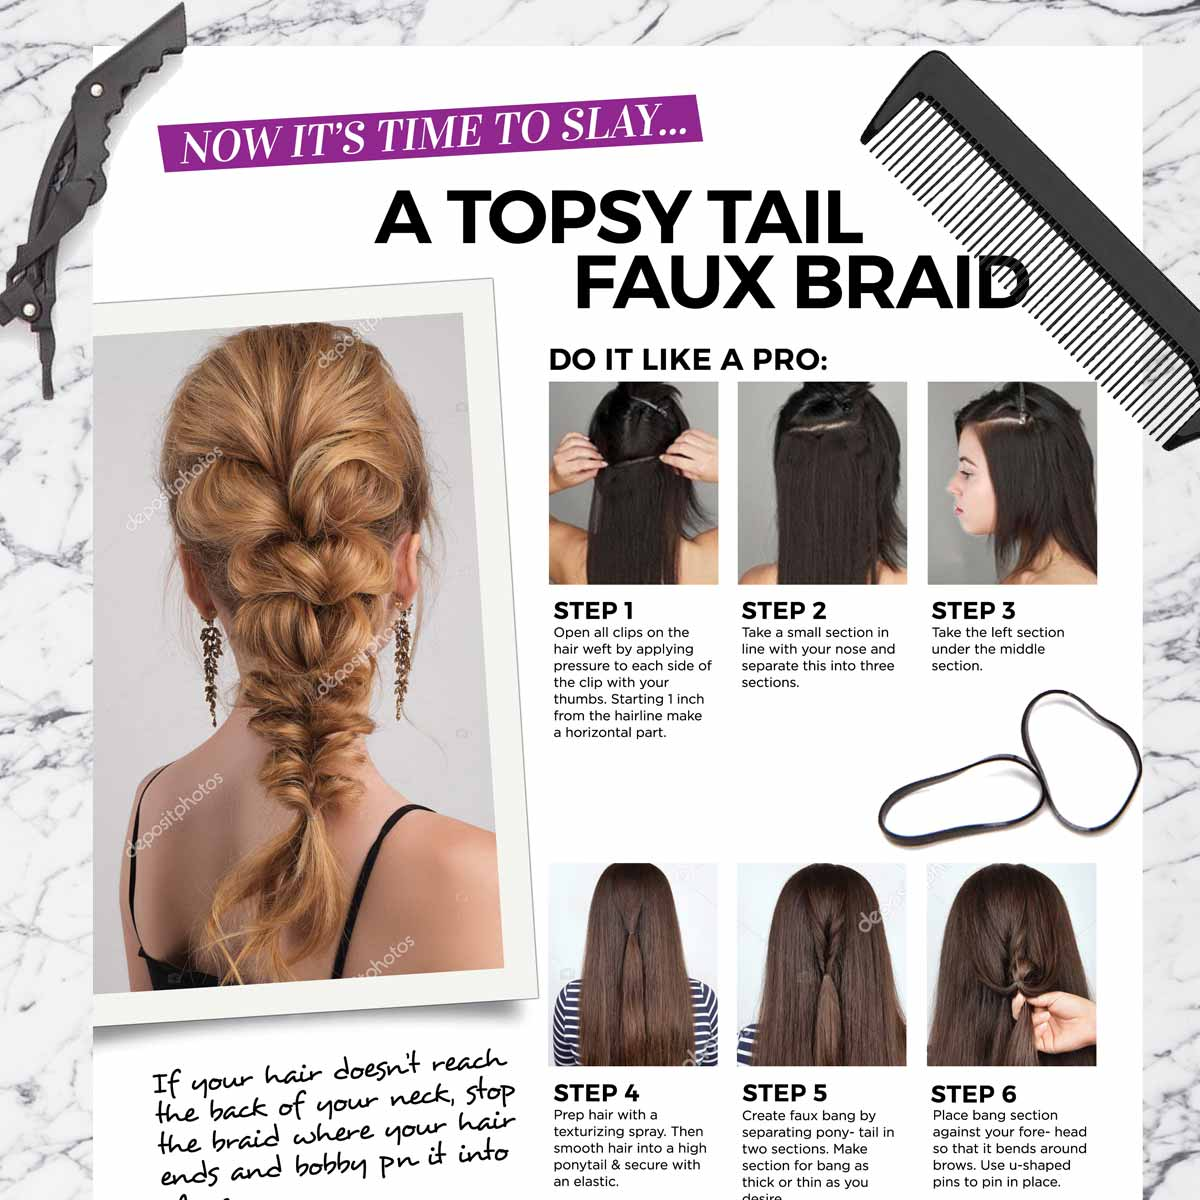 Topsy Tail Faux Braid